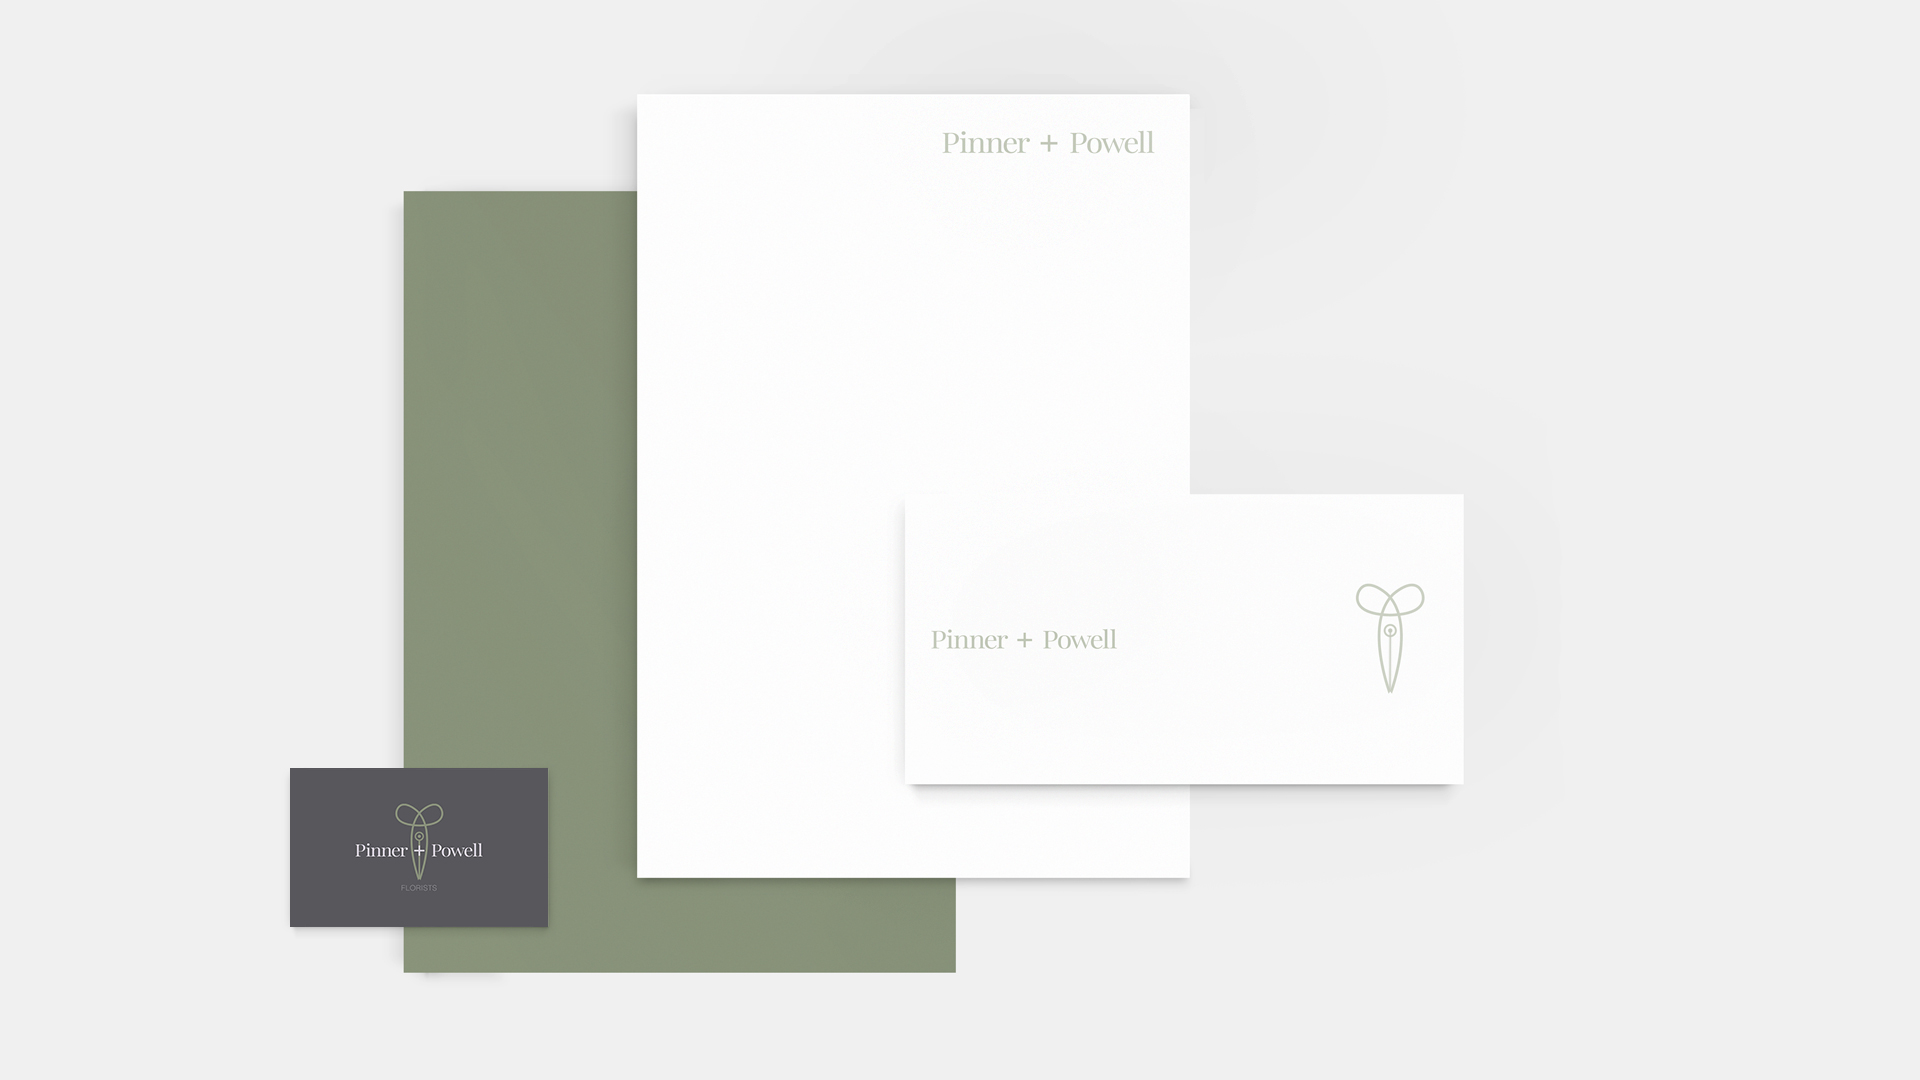 pinnerpowell stationery